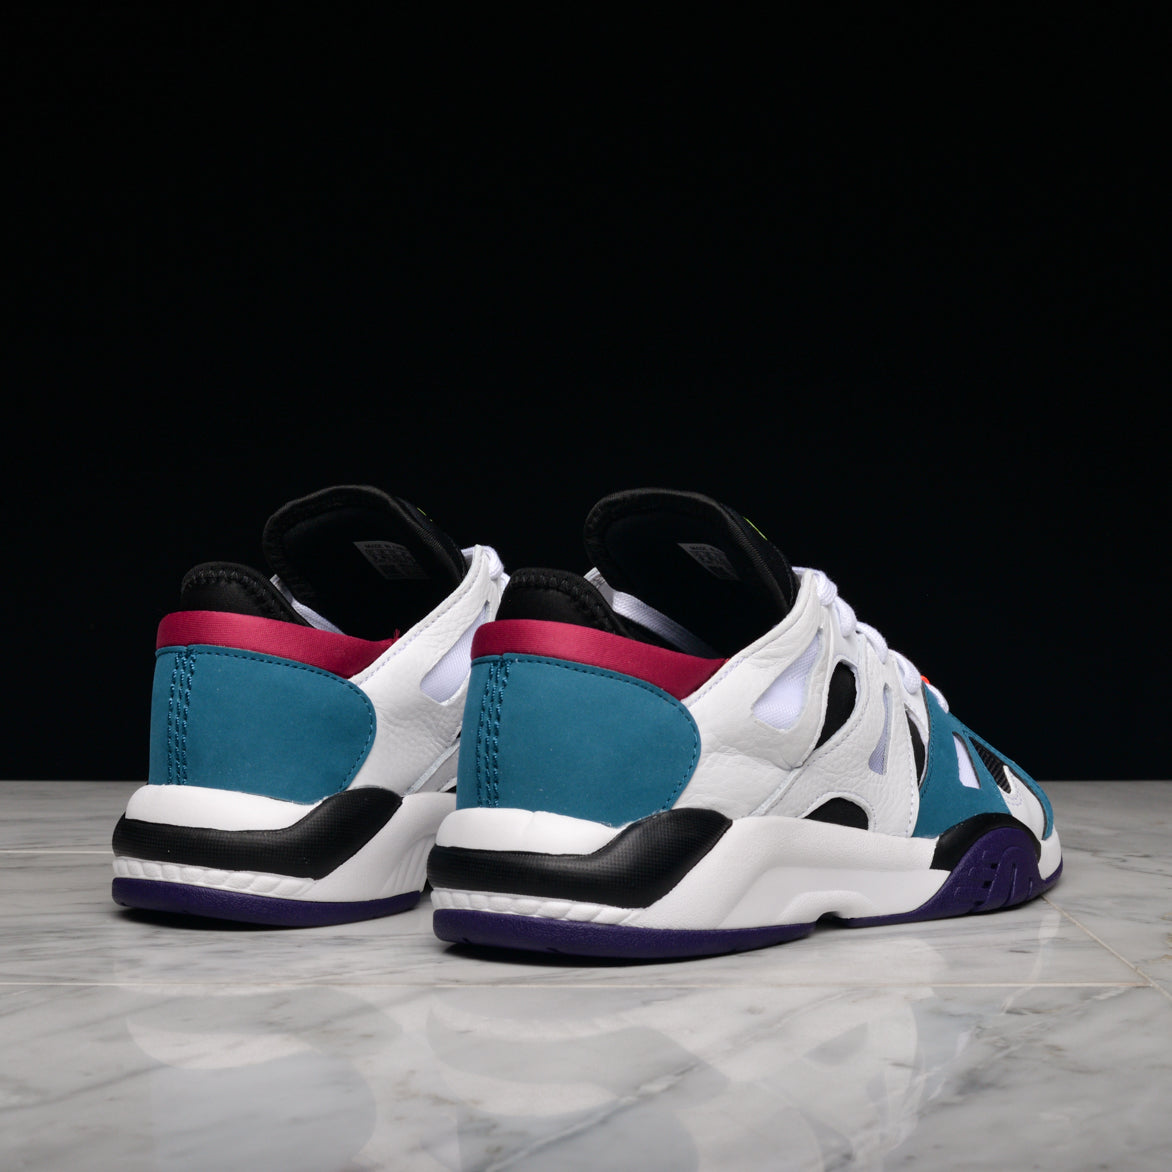 DIMENSION LOW - WHITE / BLACK / TEAL